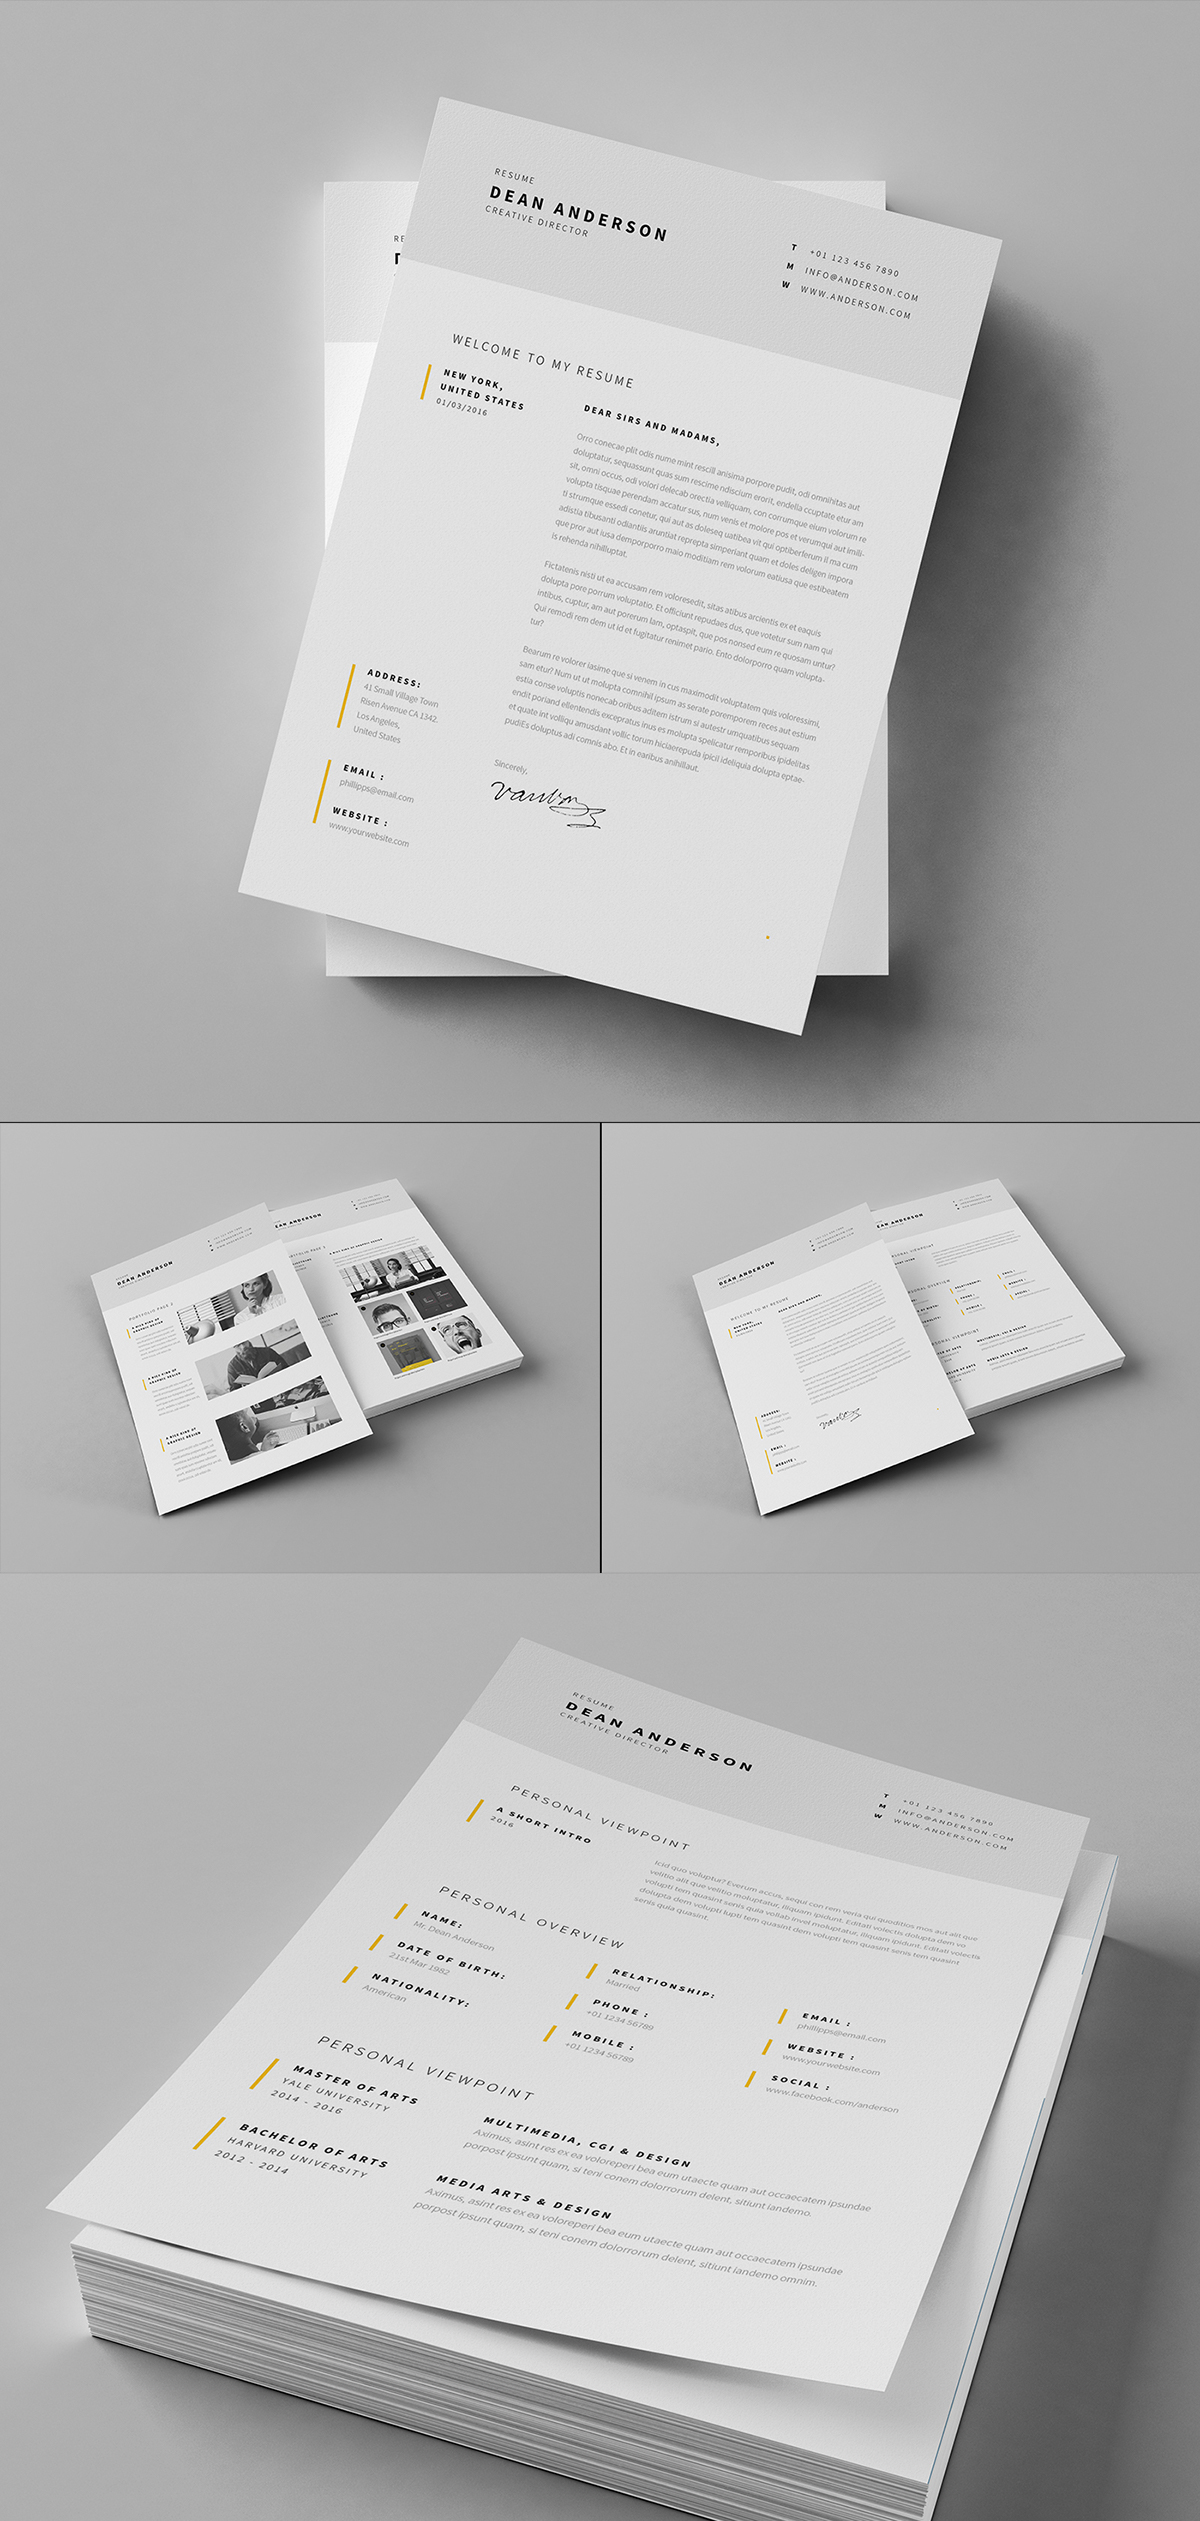 Minimal Resume / CV / Curriculum Vitae / 7 Pages on Behance